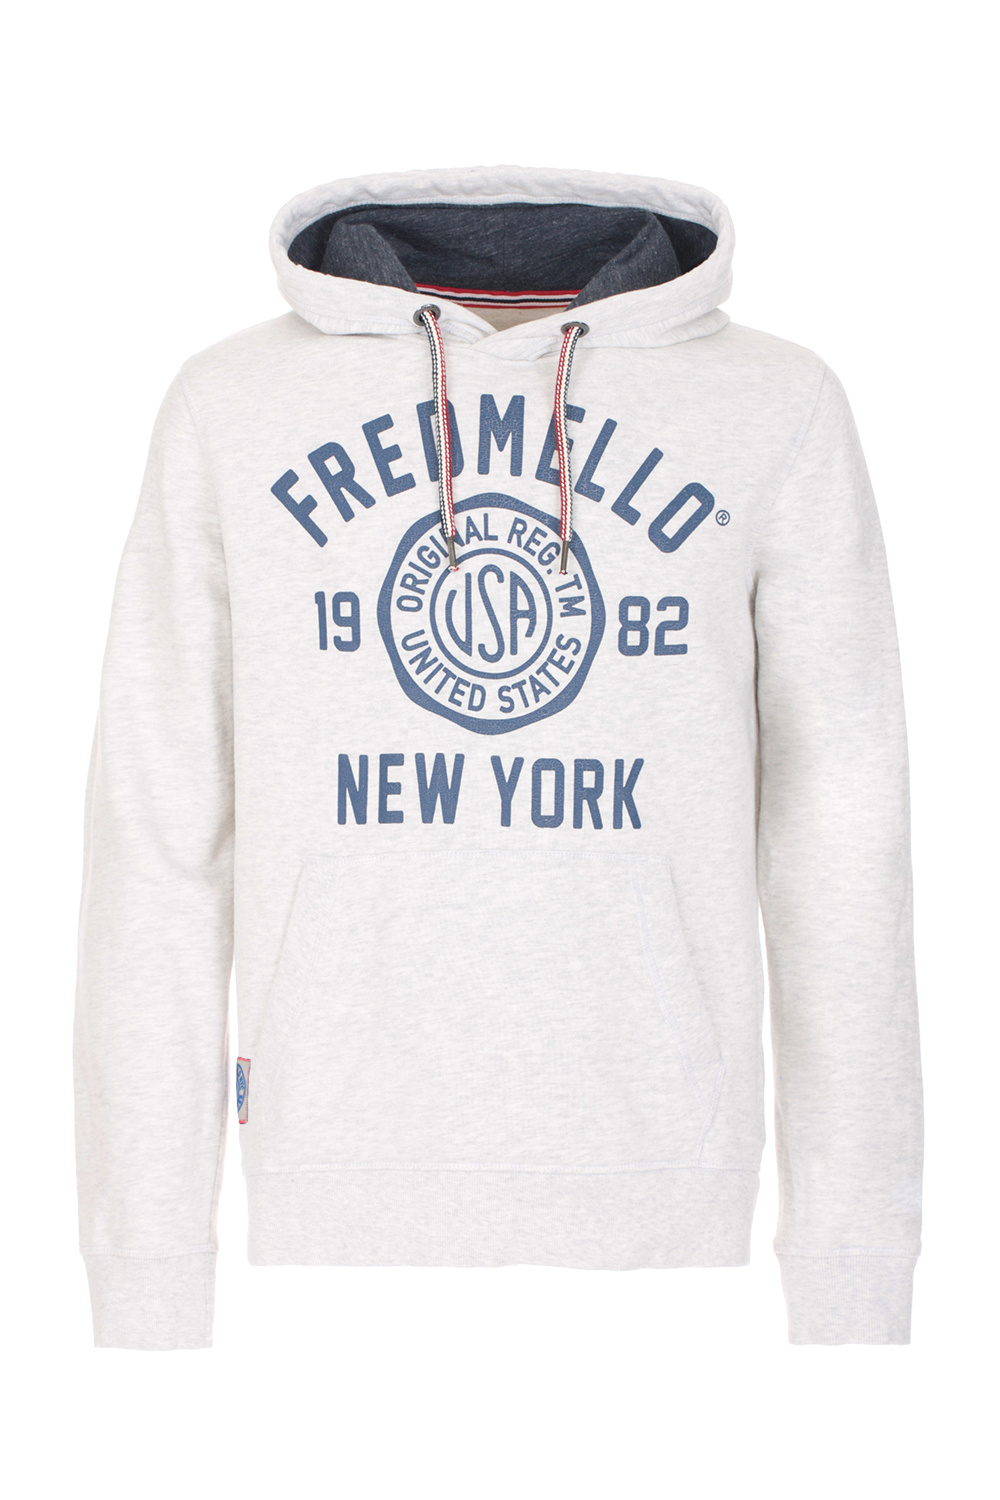 Fred Mello Hooded Sweater Logo Ivory